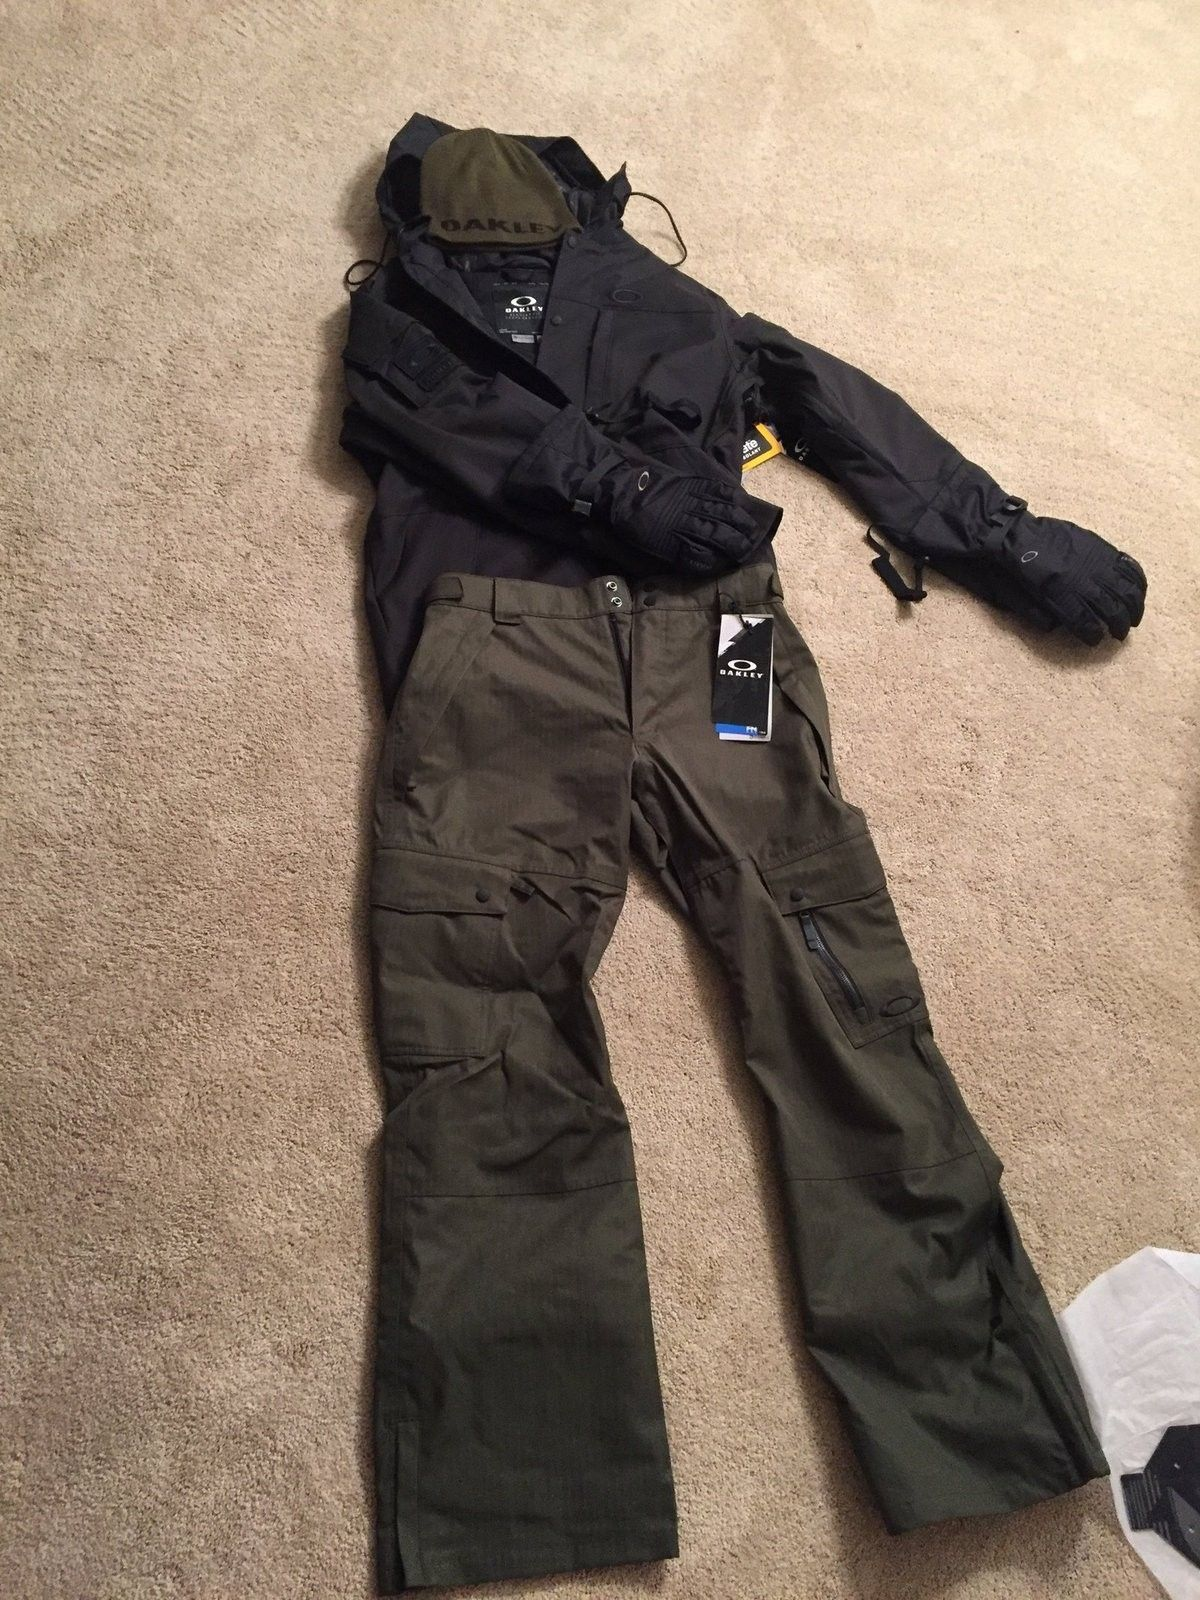 Snow Gear - image.jpeg